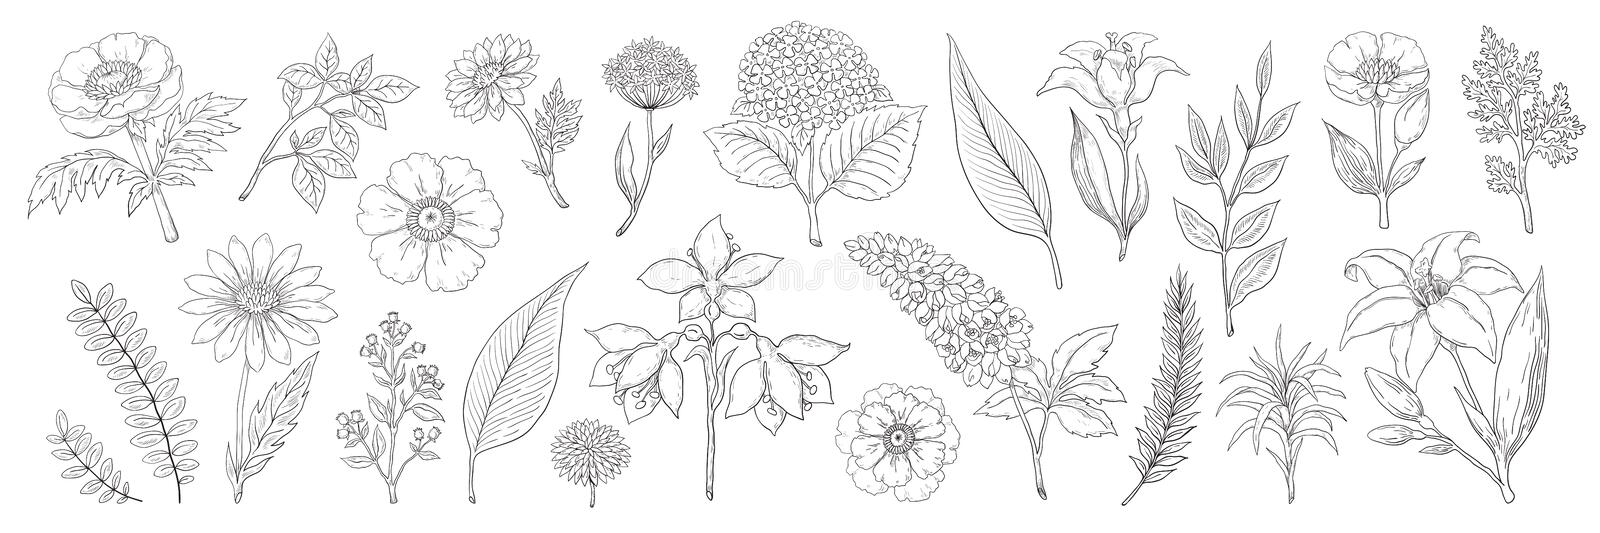 Hand drawn flowers. Vintage floral sketch, summer leaves branches and herbs collection. Vector foliage and bouquet. Hand drawn flowers. Vintage floral sketch vector illustration